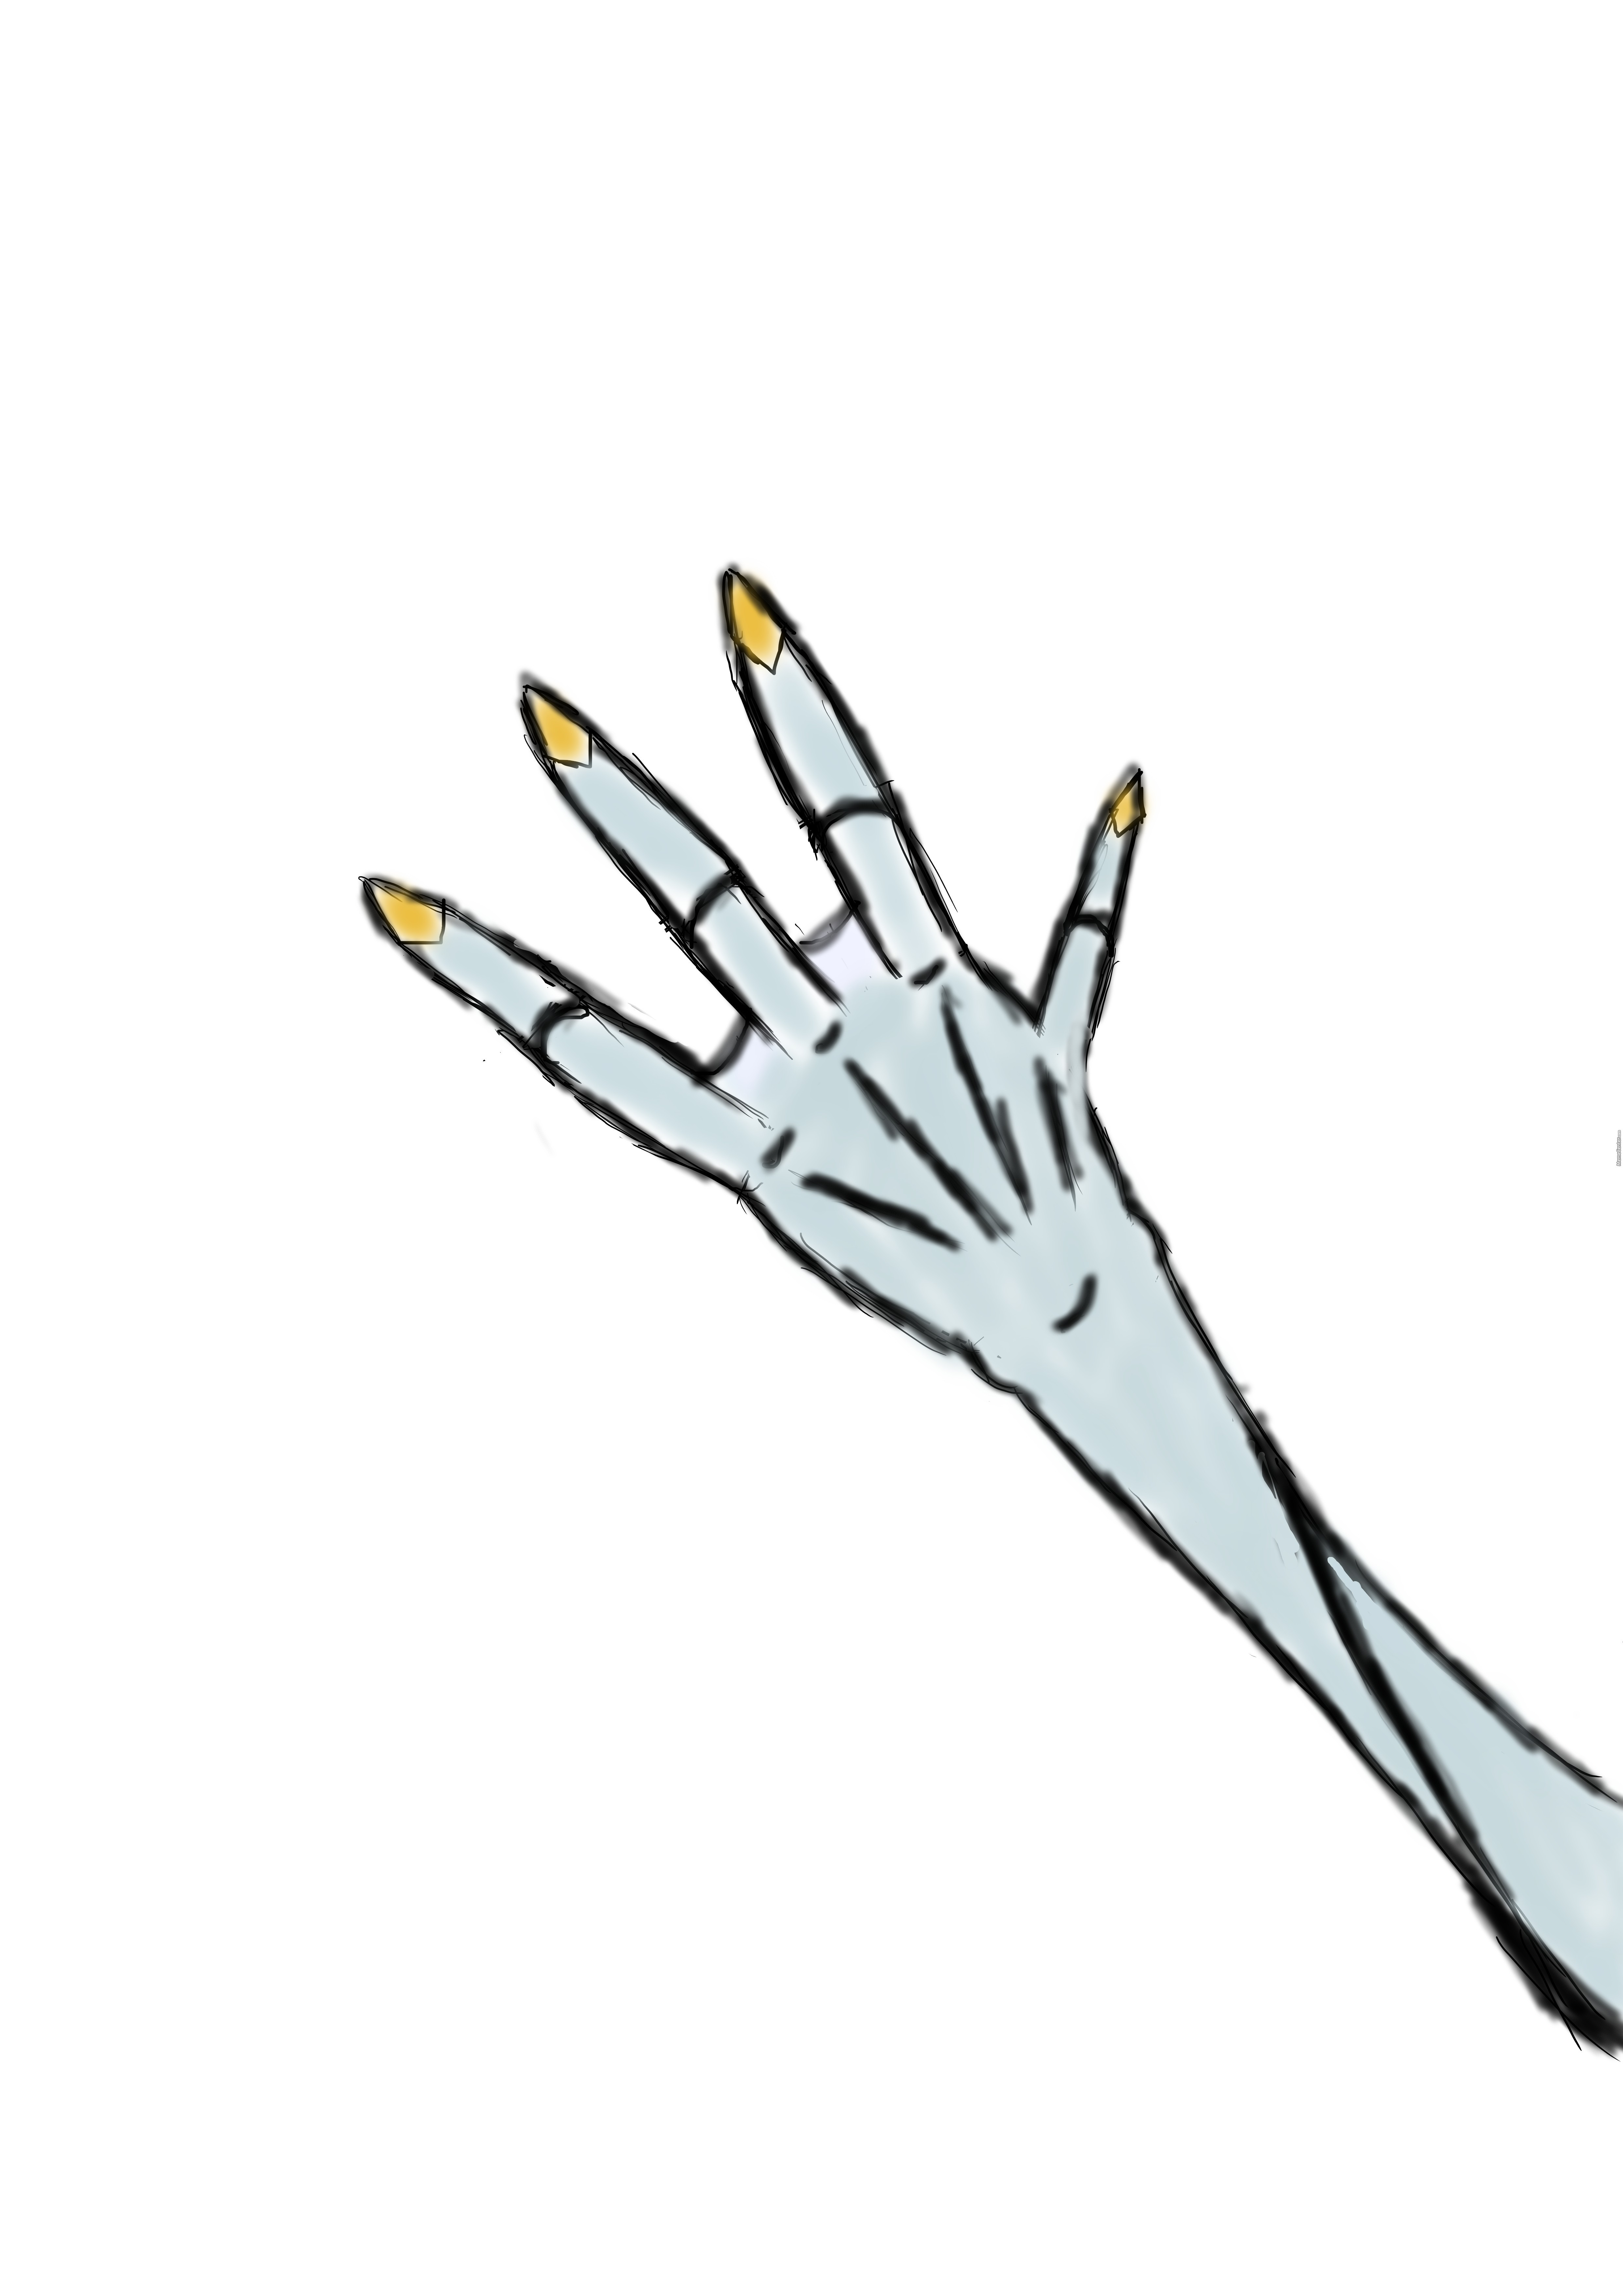 So I Made An Tried To Draw An Alien Hand By Recyclebin